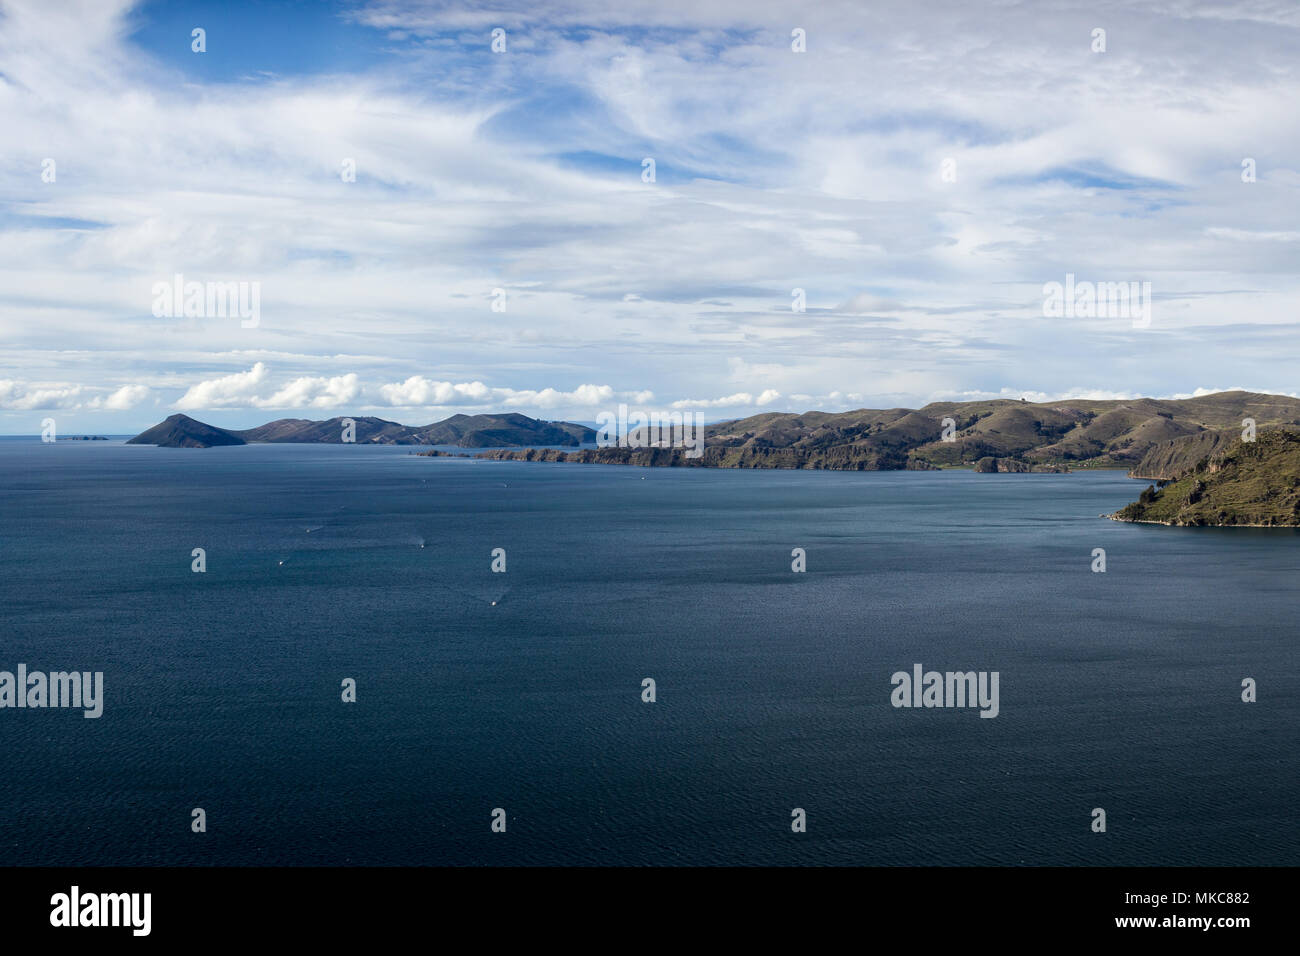 View of Lake Titicaca looking north towards Isla del Sol from Cerro Calvario, Copacabana, Bolivia Stock Photo